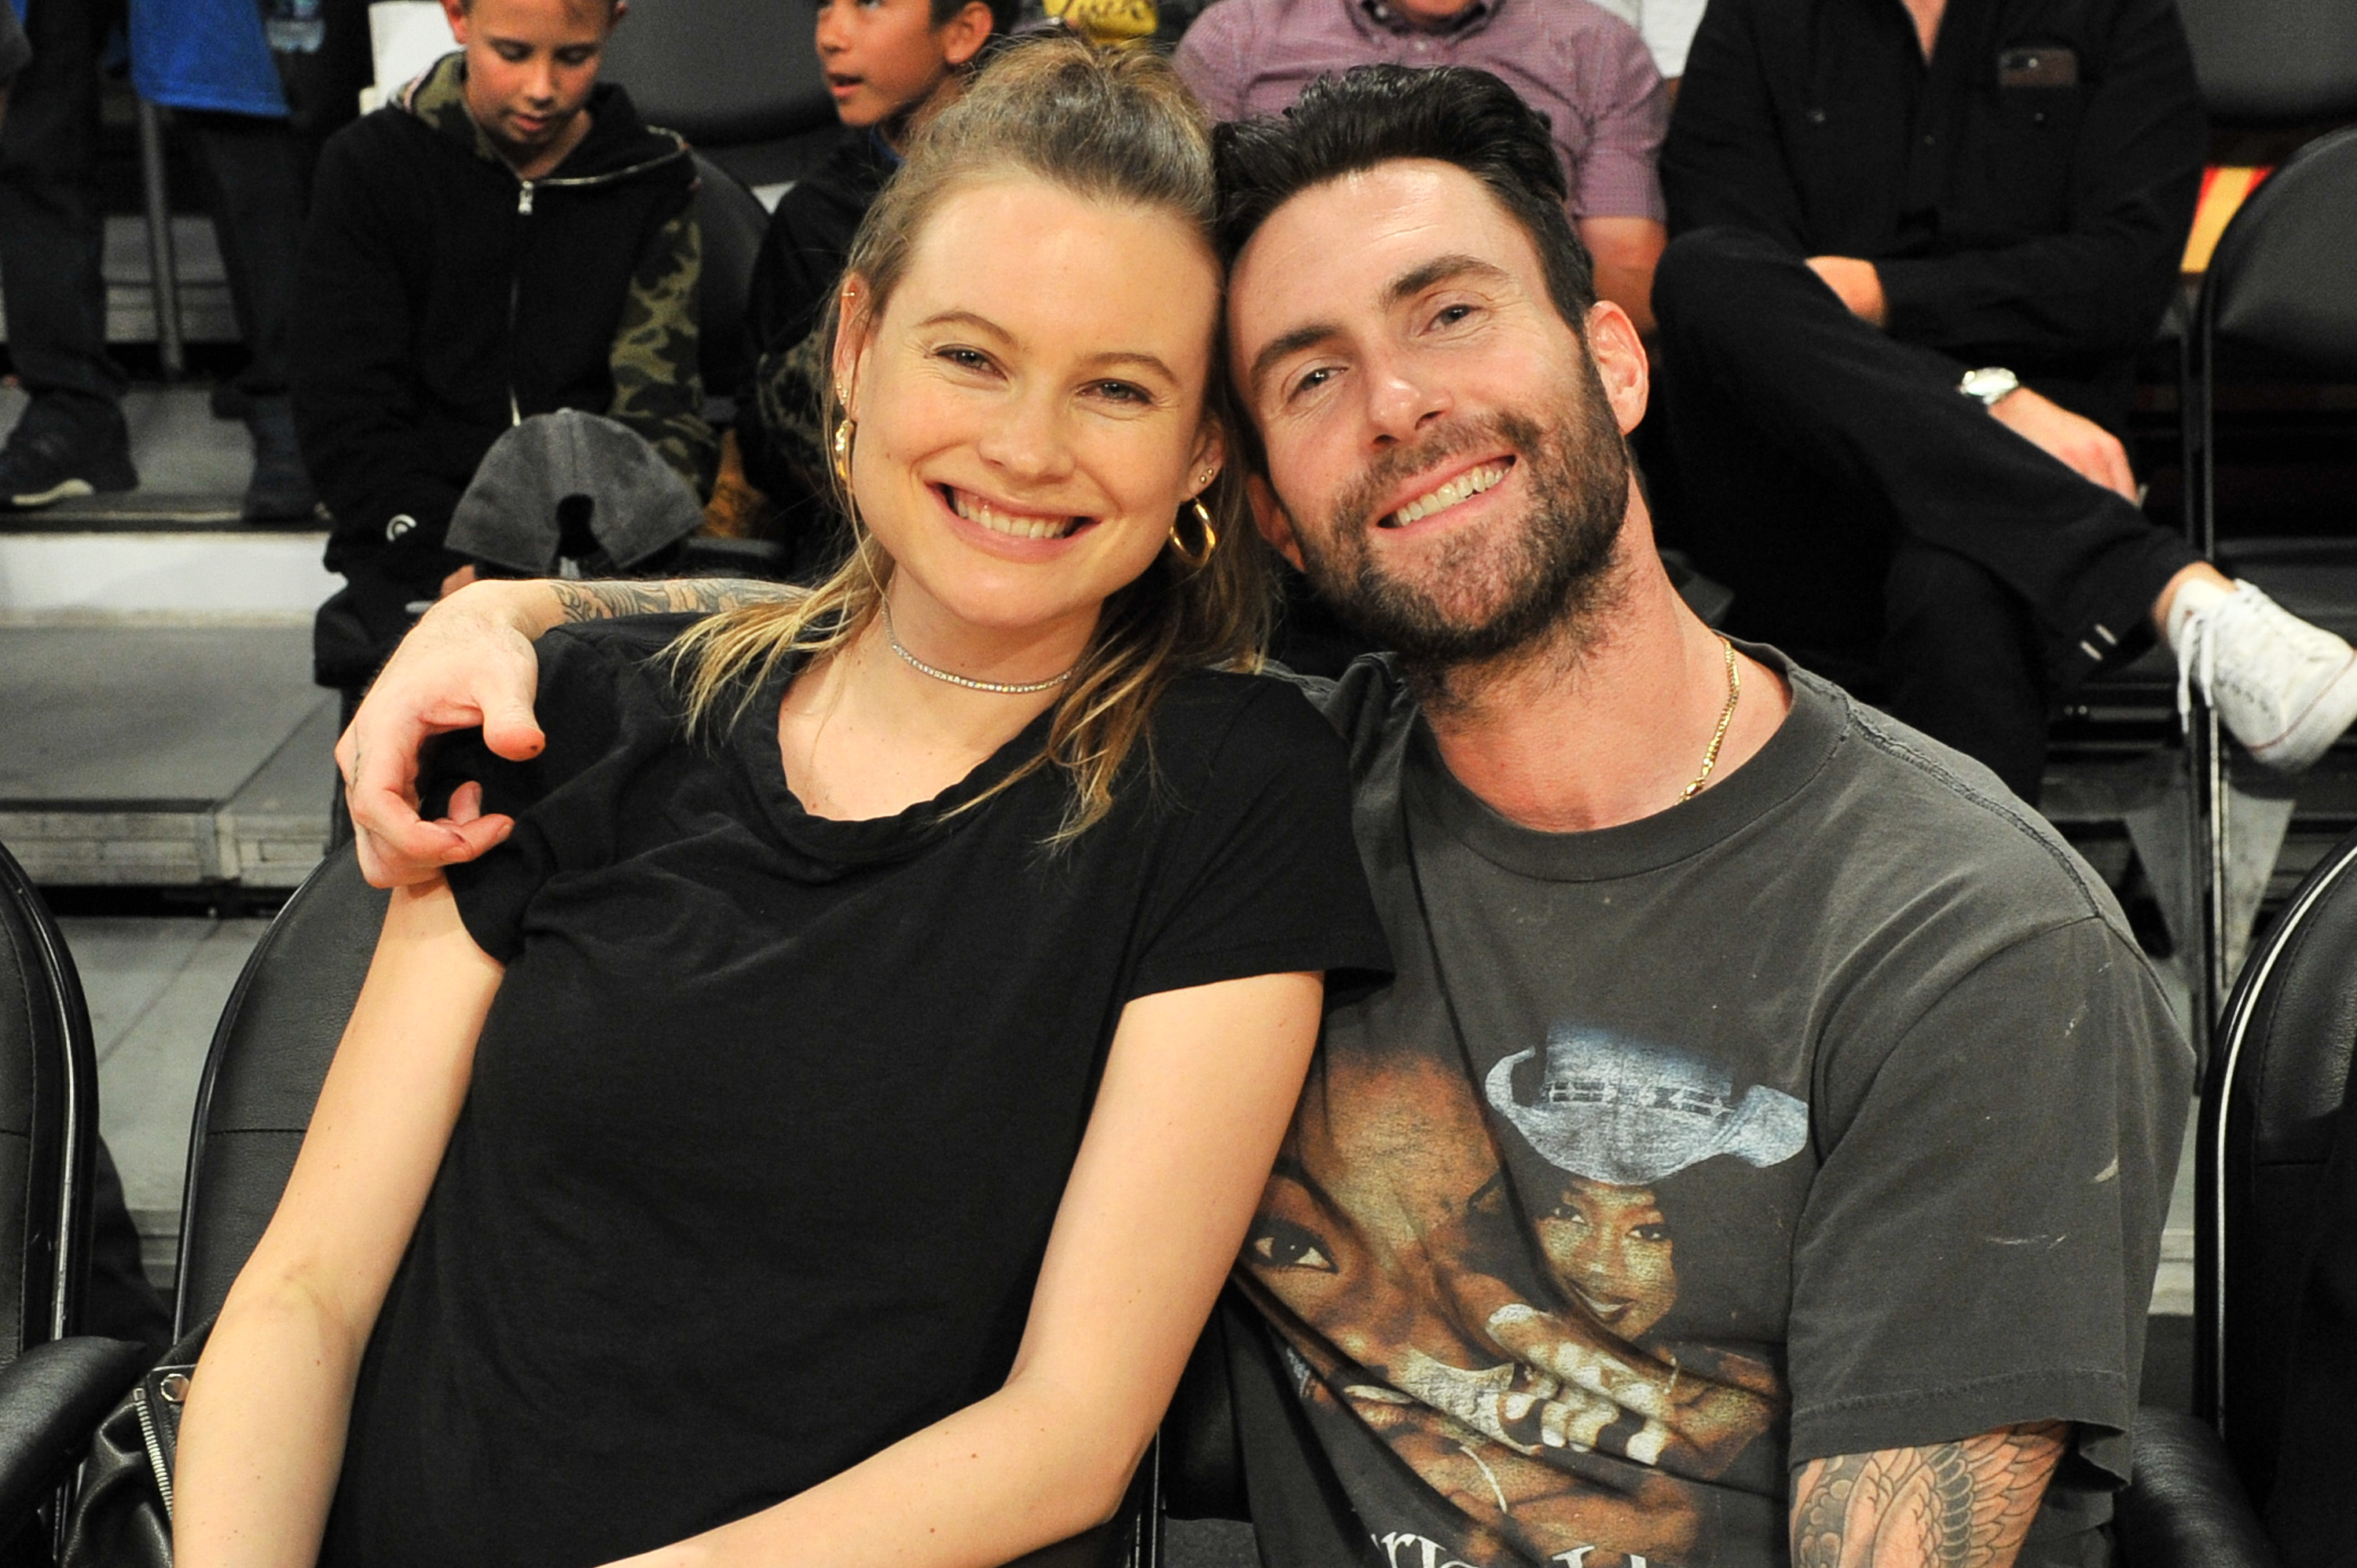 Adam-Levine-Behati-Prinsloo-Have-A-Date-Night-At-The-Laker-Game